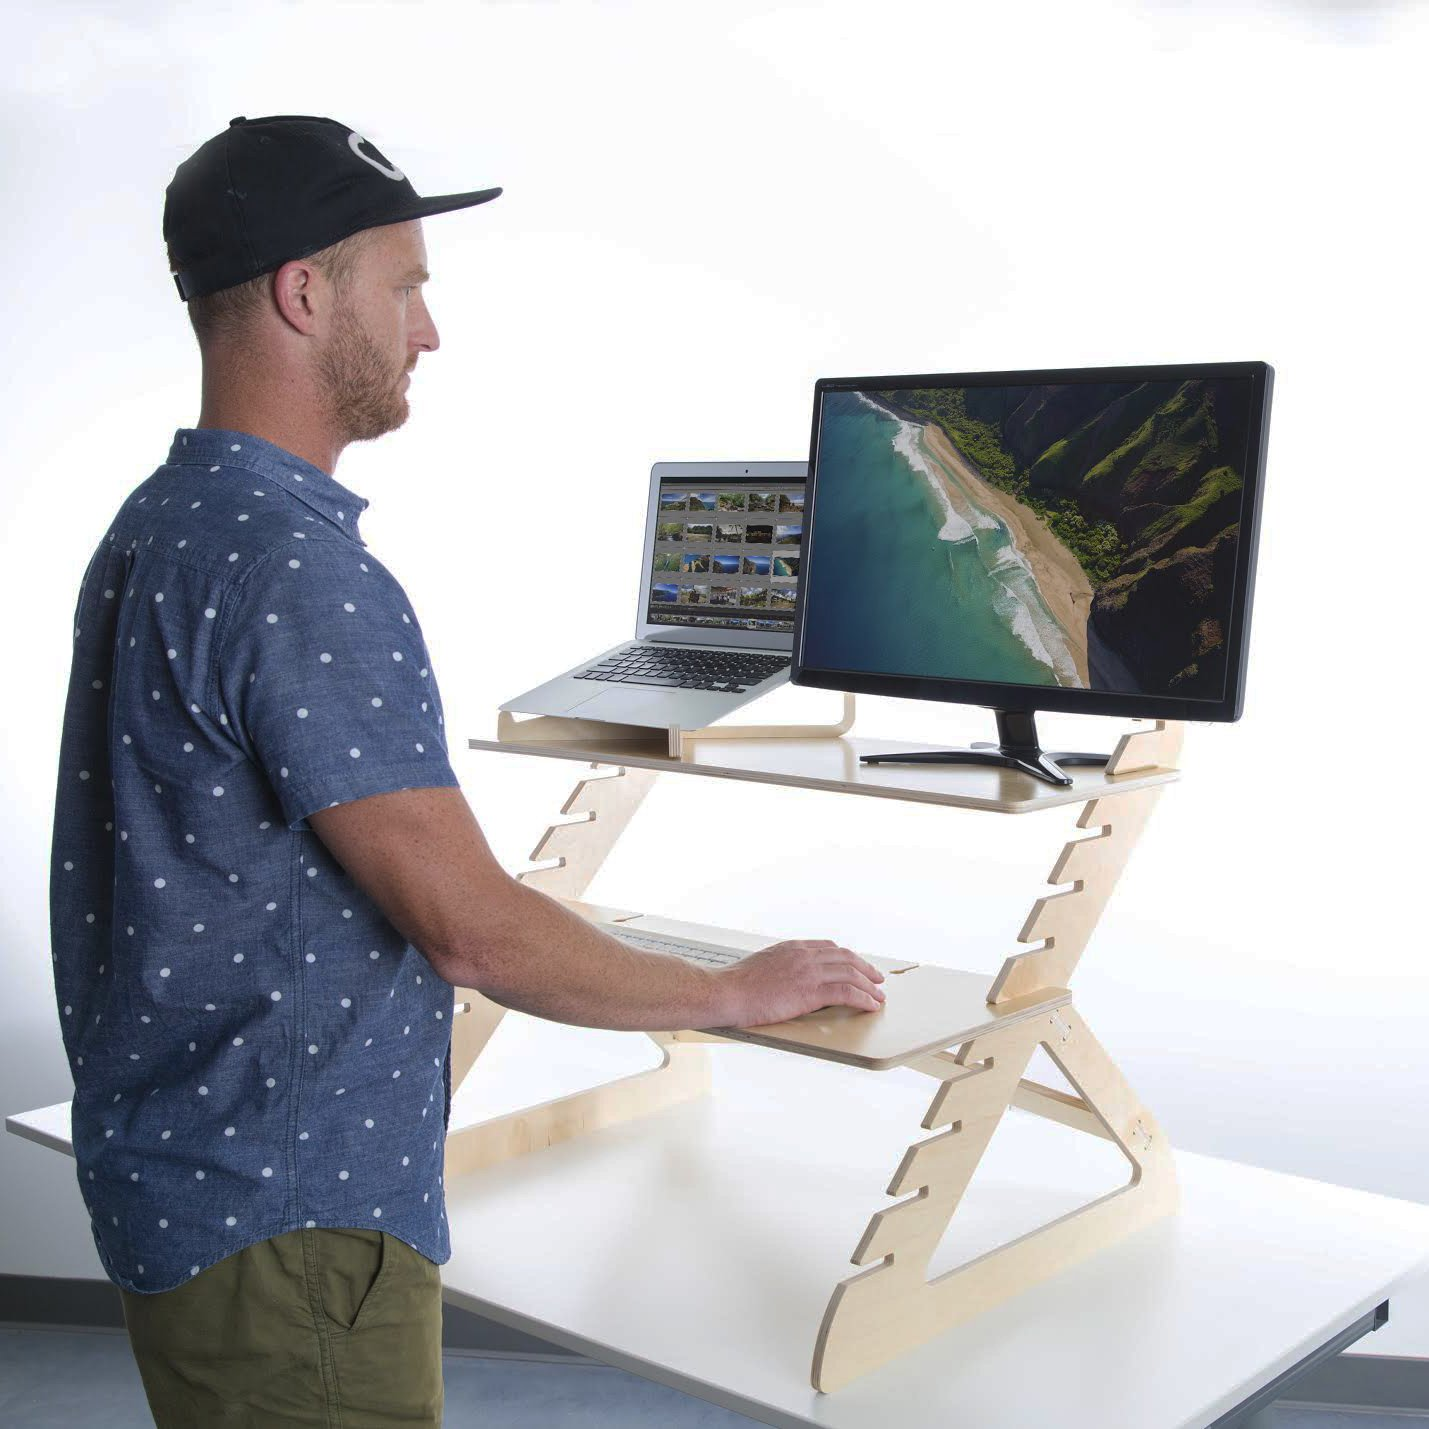 amazoncom readydesk 2 adjustable standing desk converts any desk to a dual monitor stand up desk designed and made in usa of sustainable birch wood